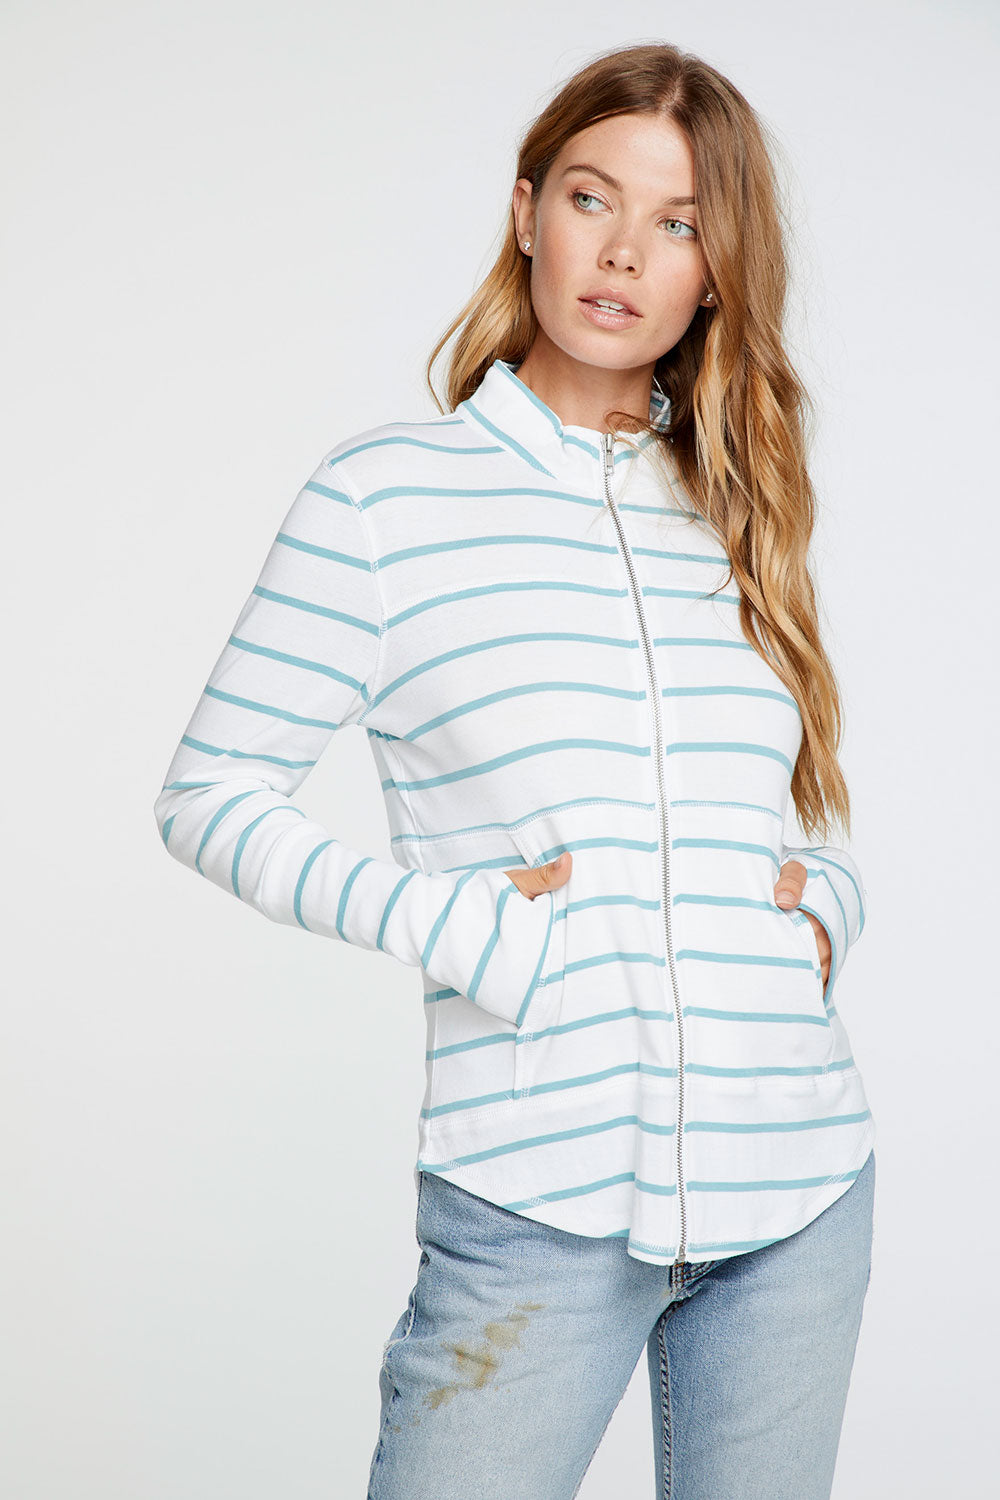 Baby Rib Mock Neck Long Sleeve Thumbhole Jacket in Stripe